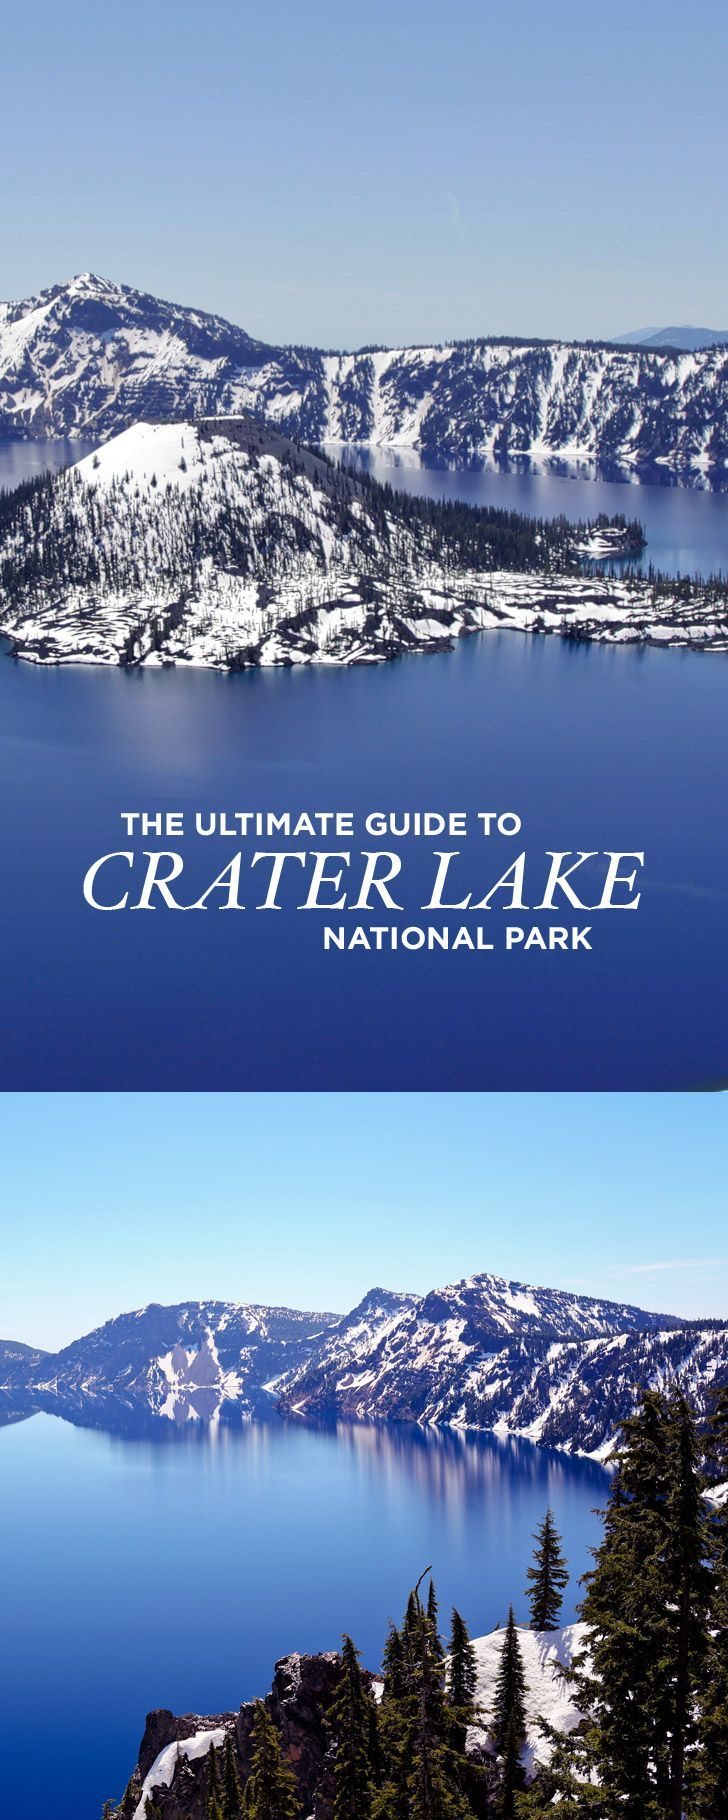 The Ultimate Guide to Crater Lake National